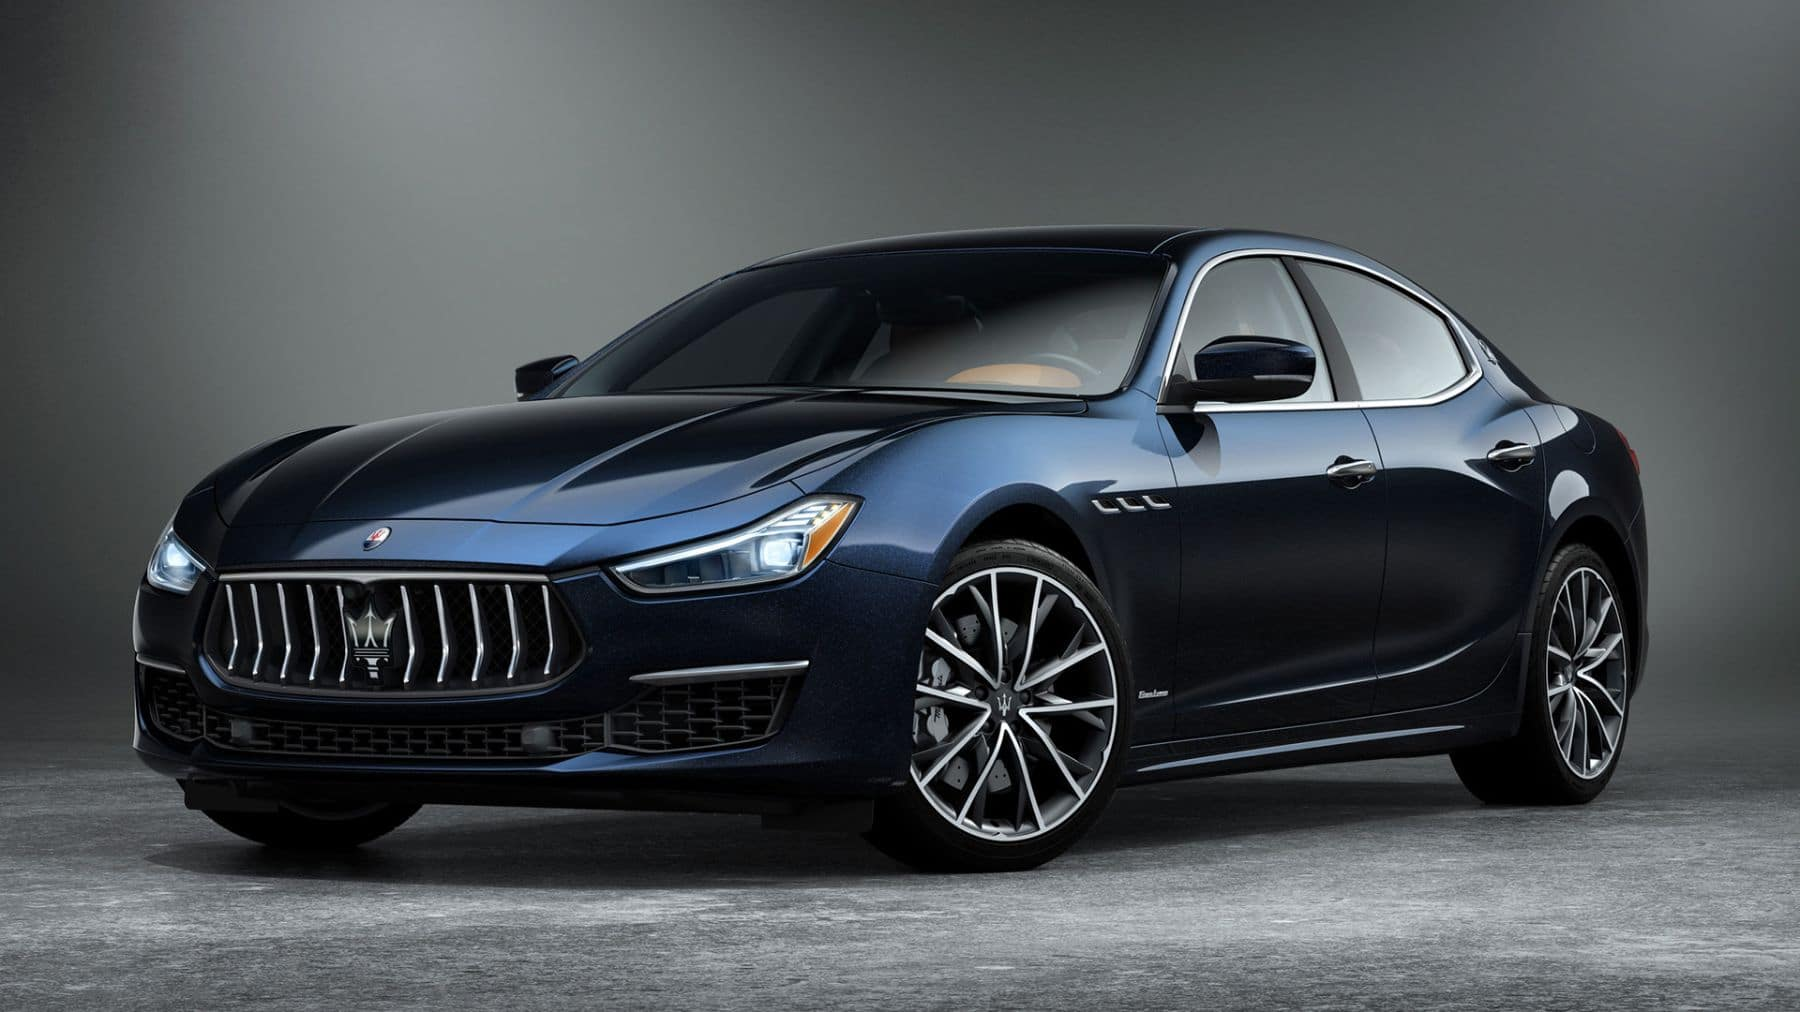 Elevating refinement with the Maserati Edizione Nobile lineup